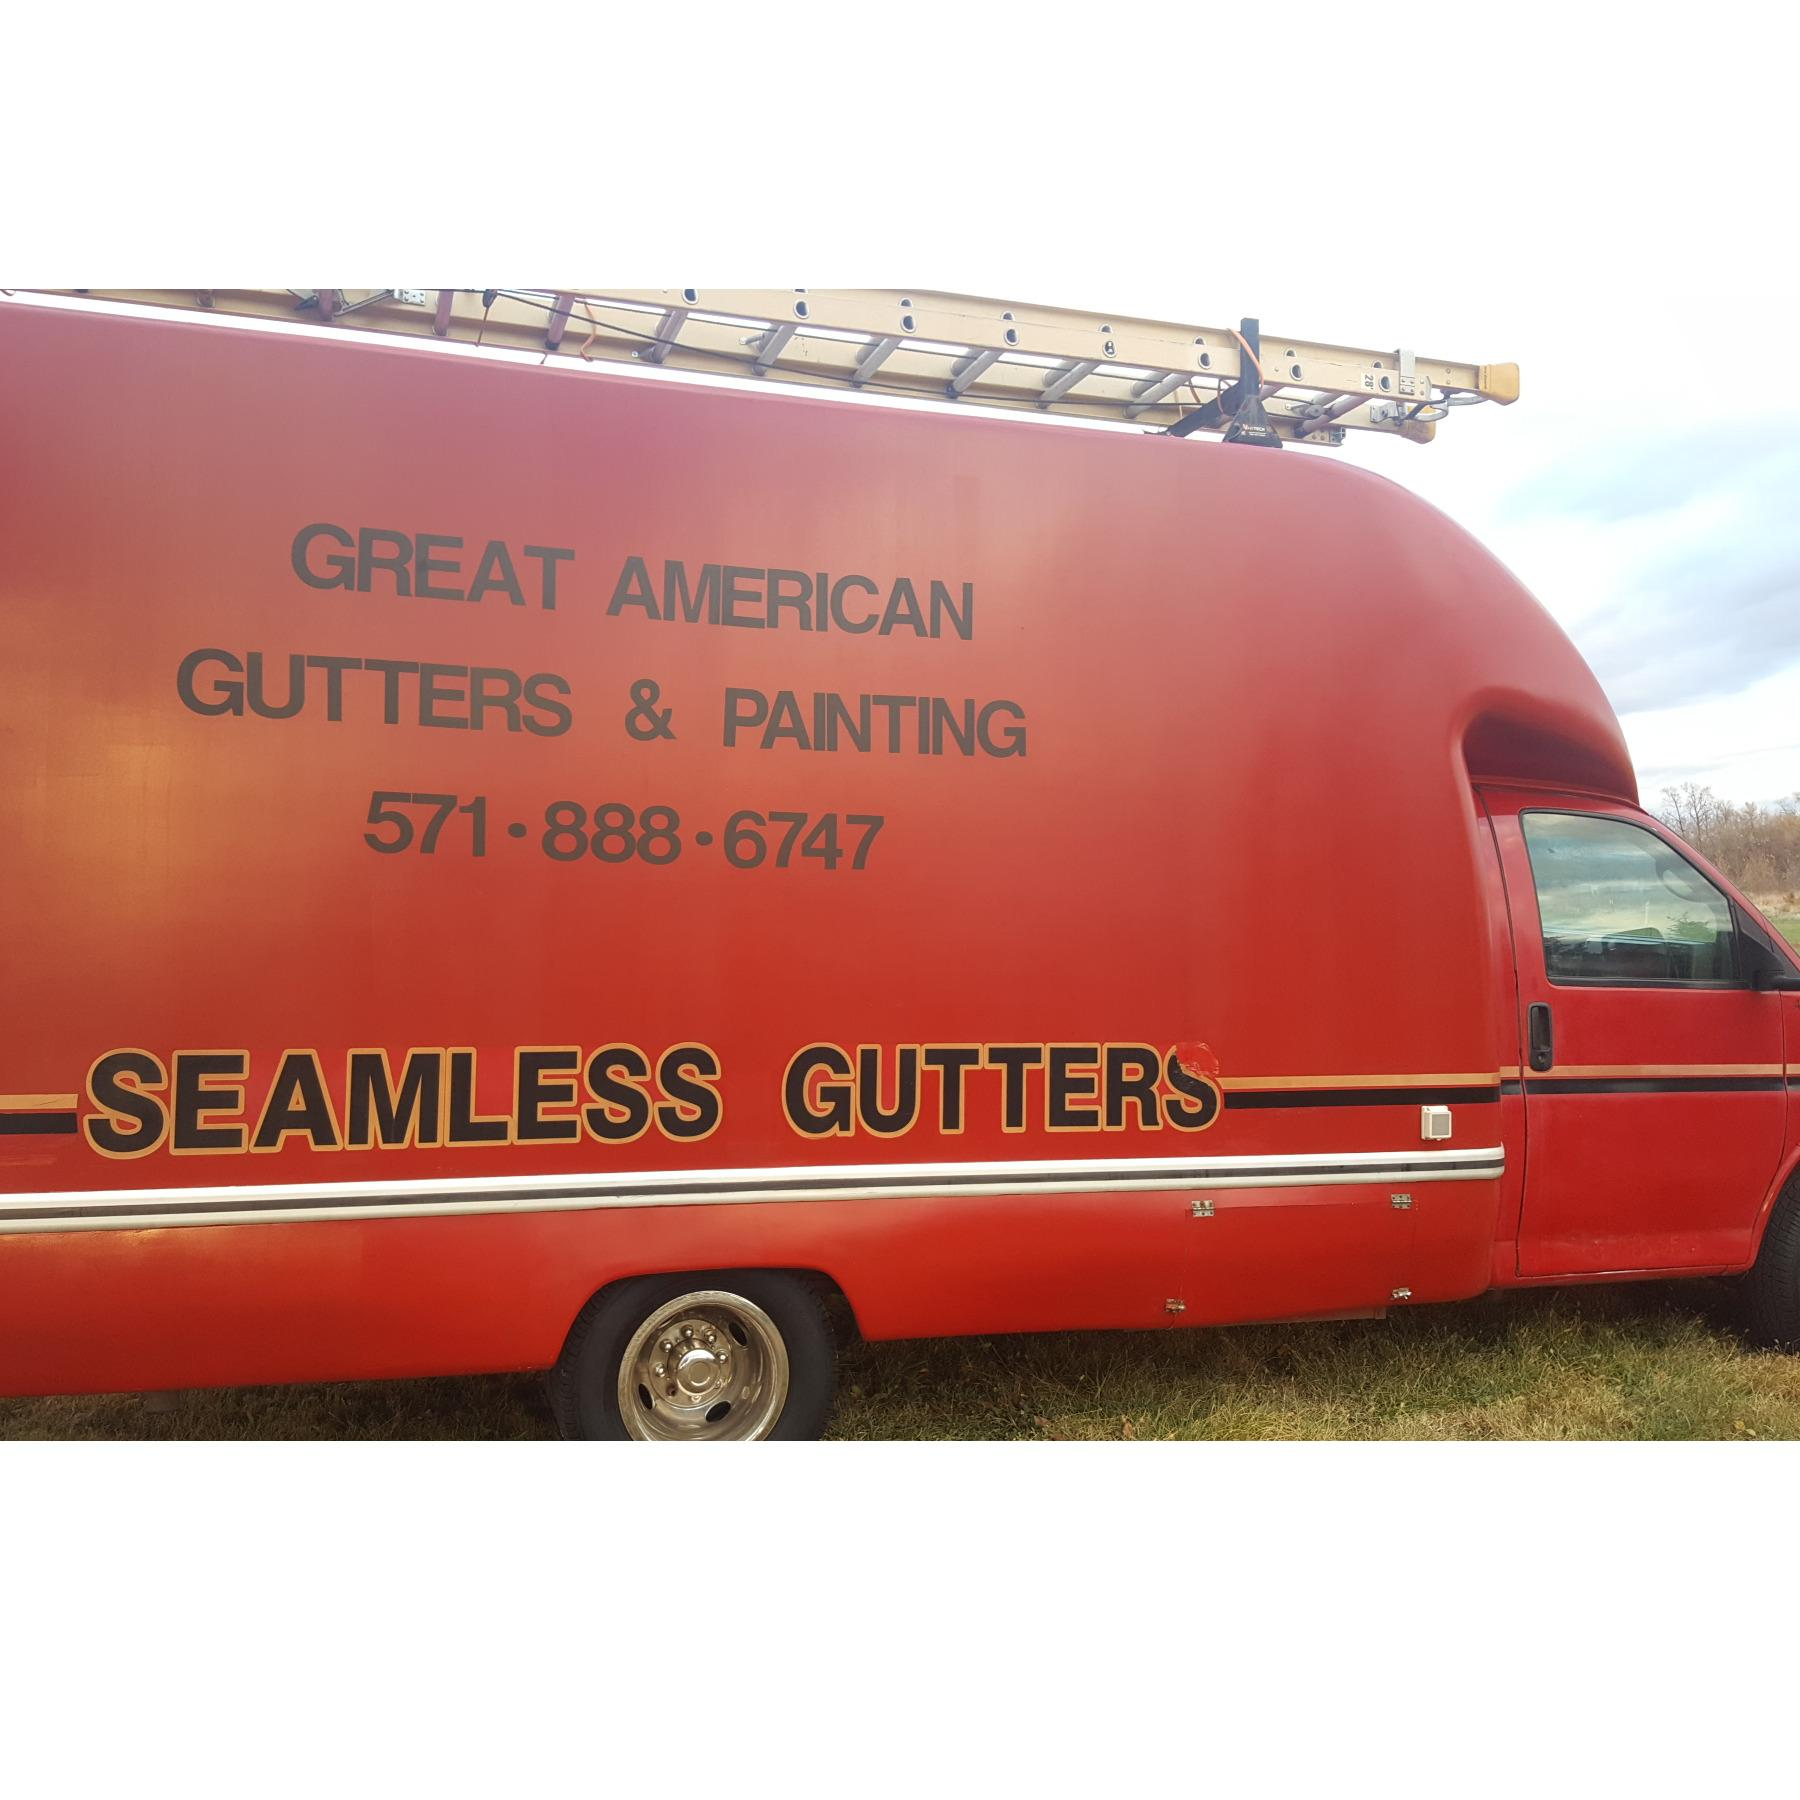 Great Ameican Gutters & Painting